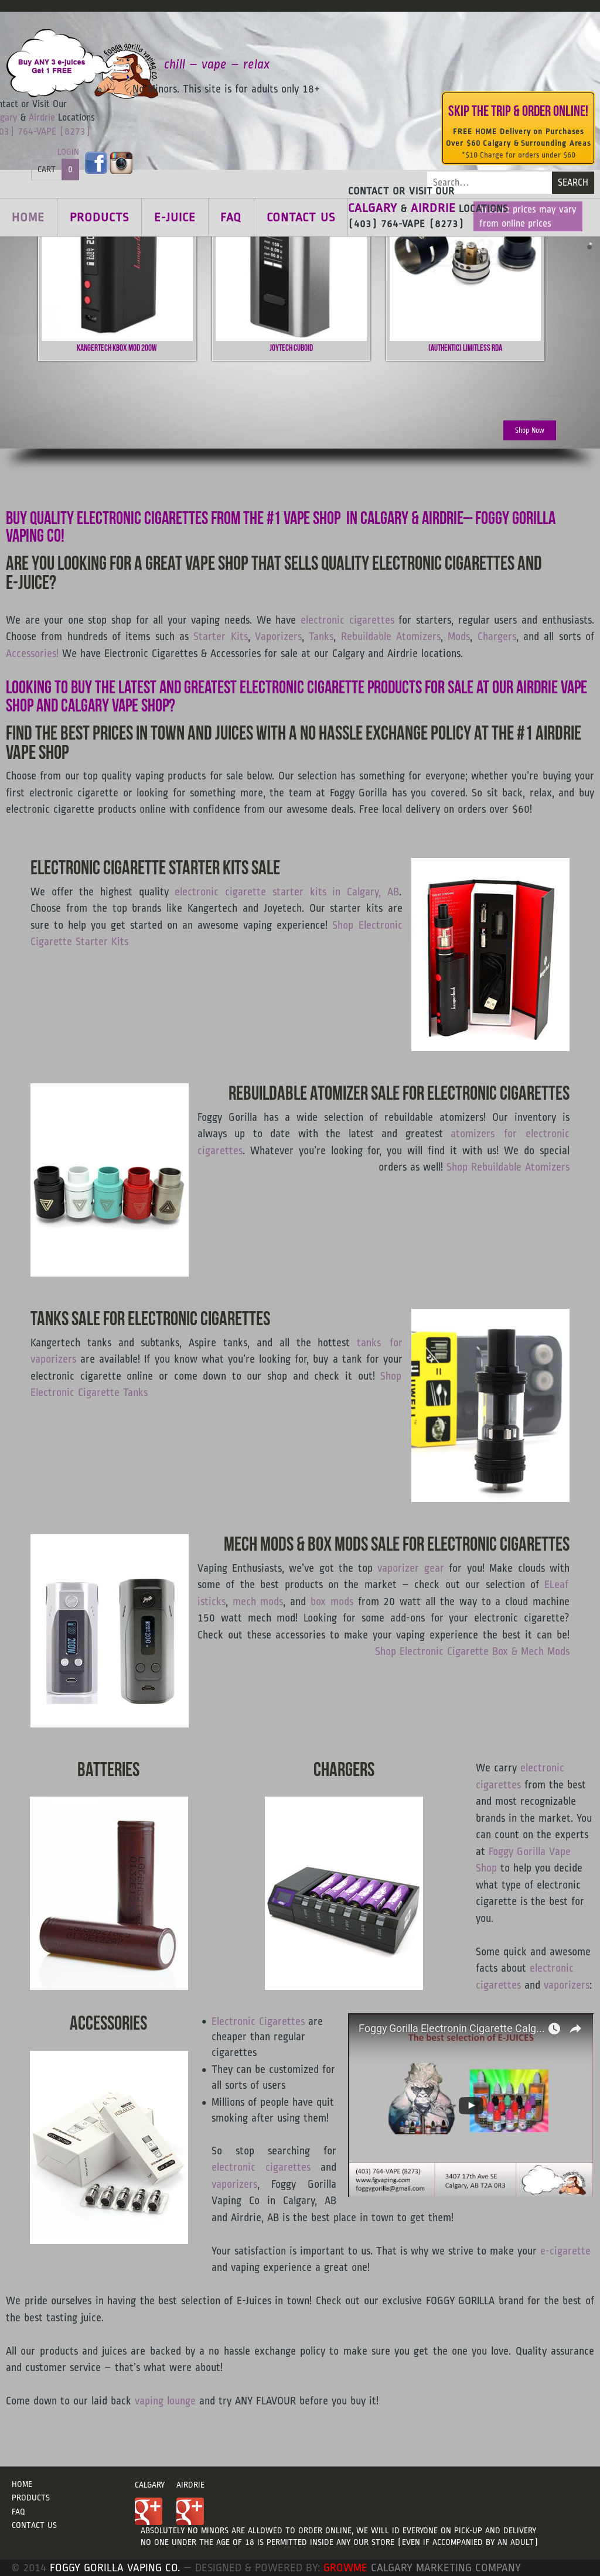 Foggy Gorilla Vaping Competitors, Revenue and Employees